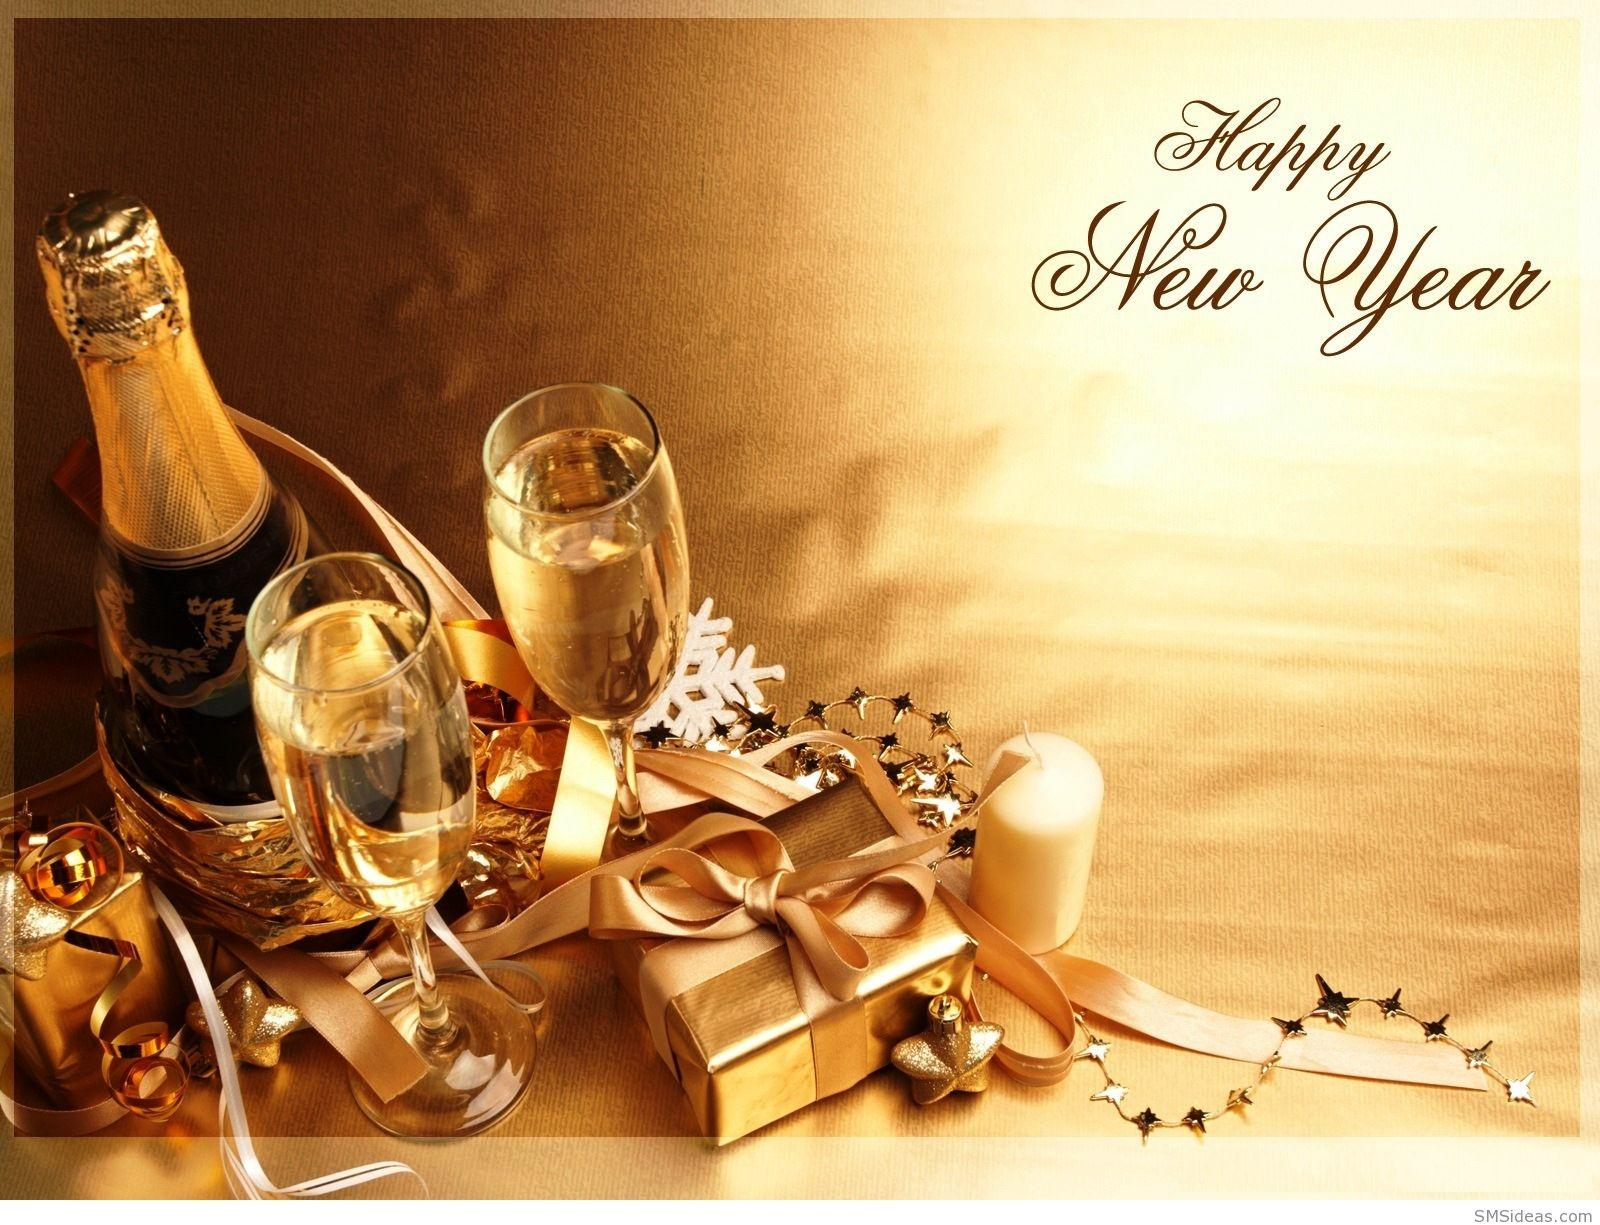 Wallpaper download new year 2015 - Happy New Year Wallpaper 2015 Pc Free Download 10489 Wallpaper